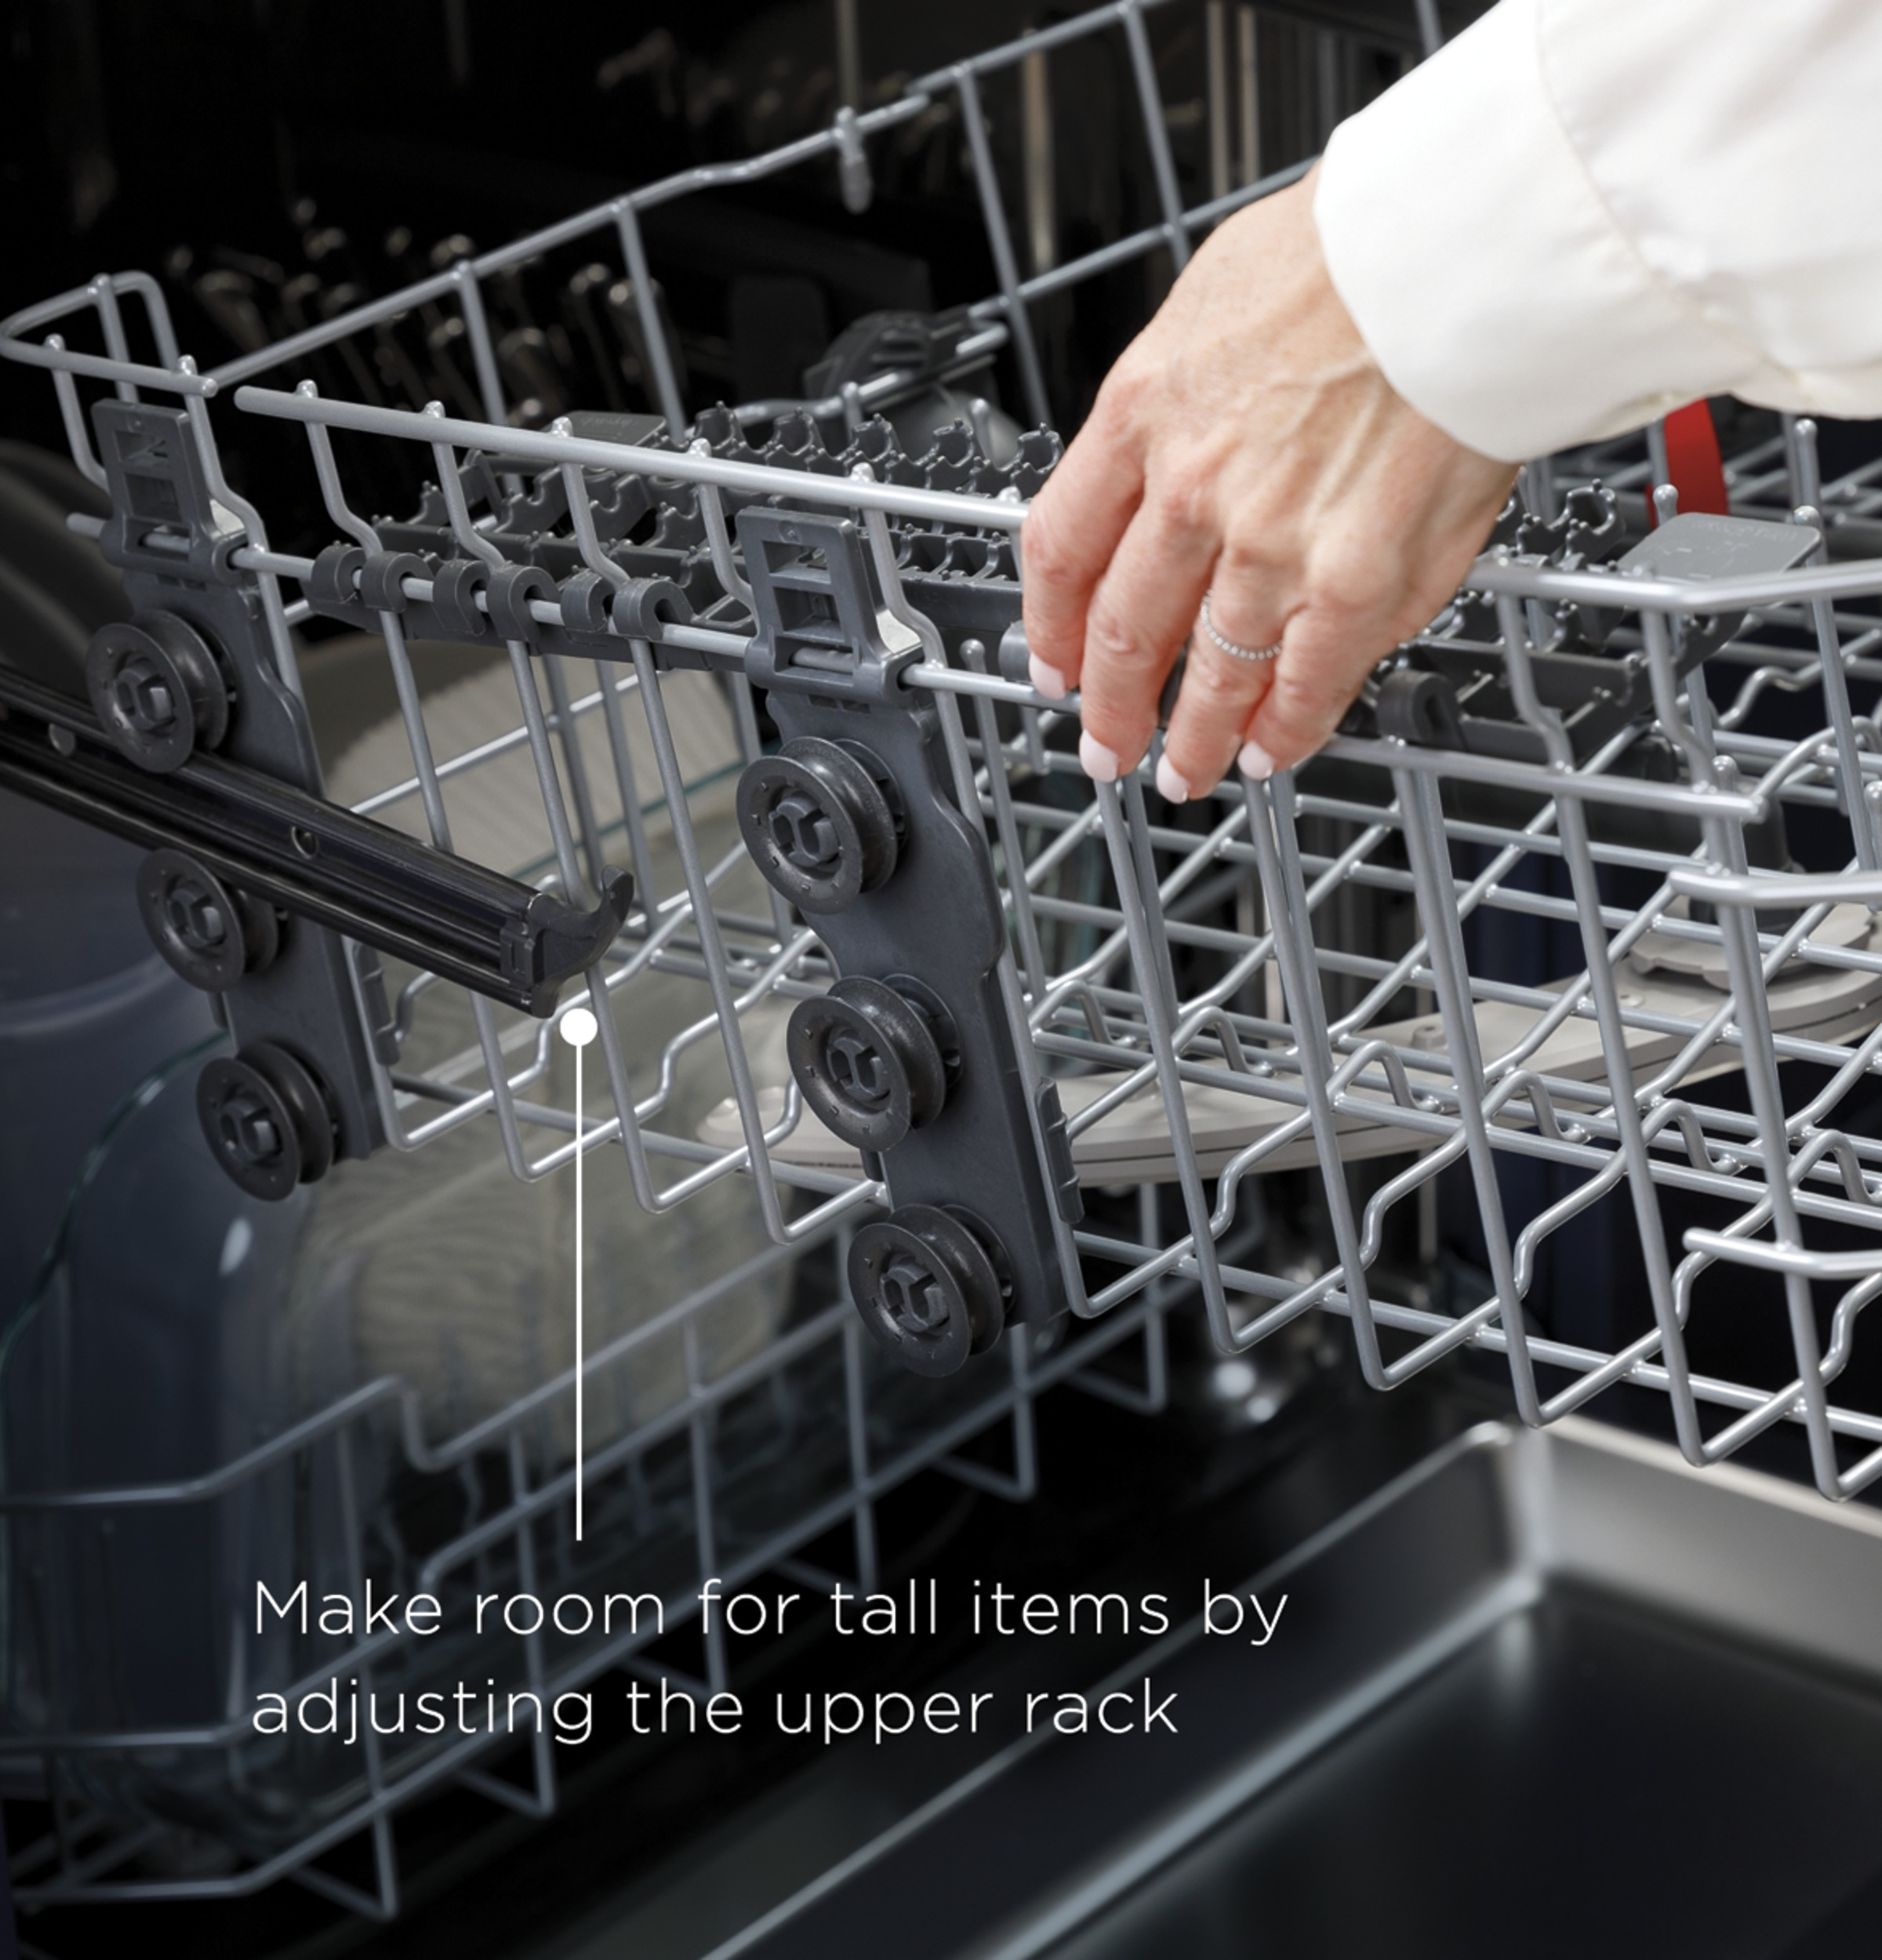 Model: GDT605PFMDS | GE GE® Top Control with Plastic Interior Dishwasher with Sanitize Cycle & Dry Boost